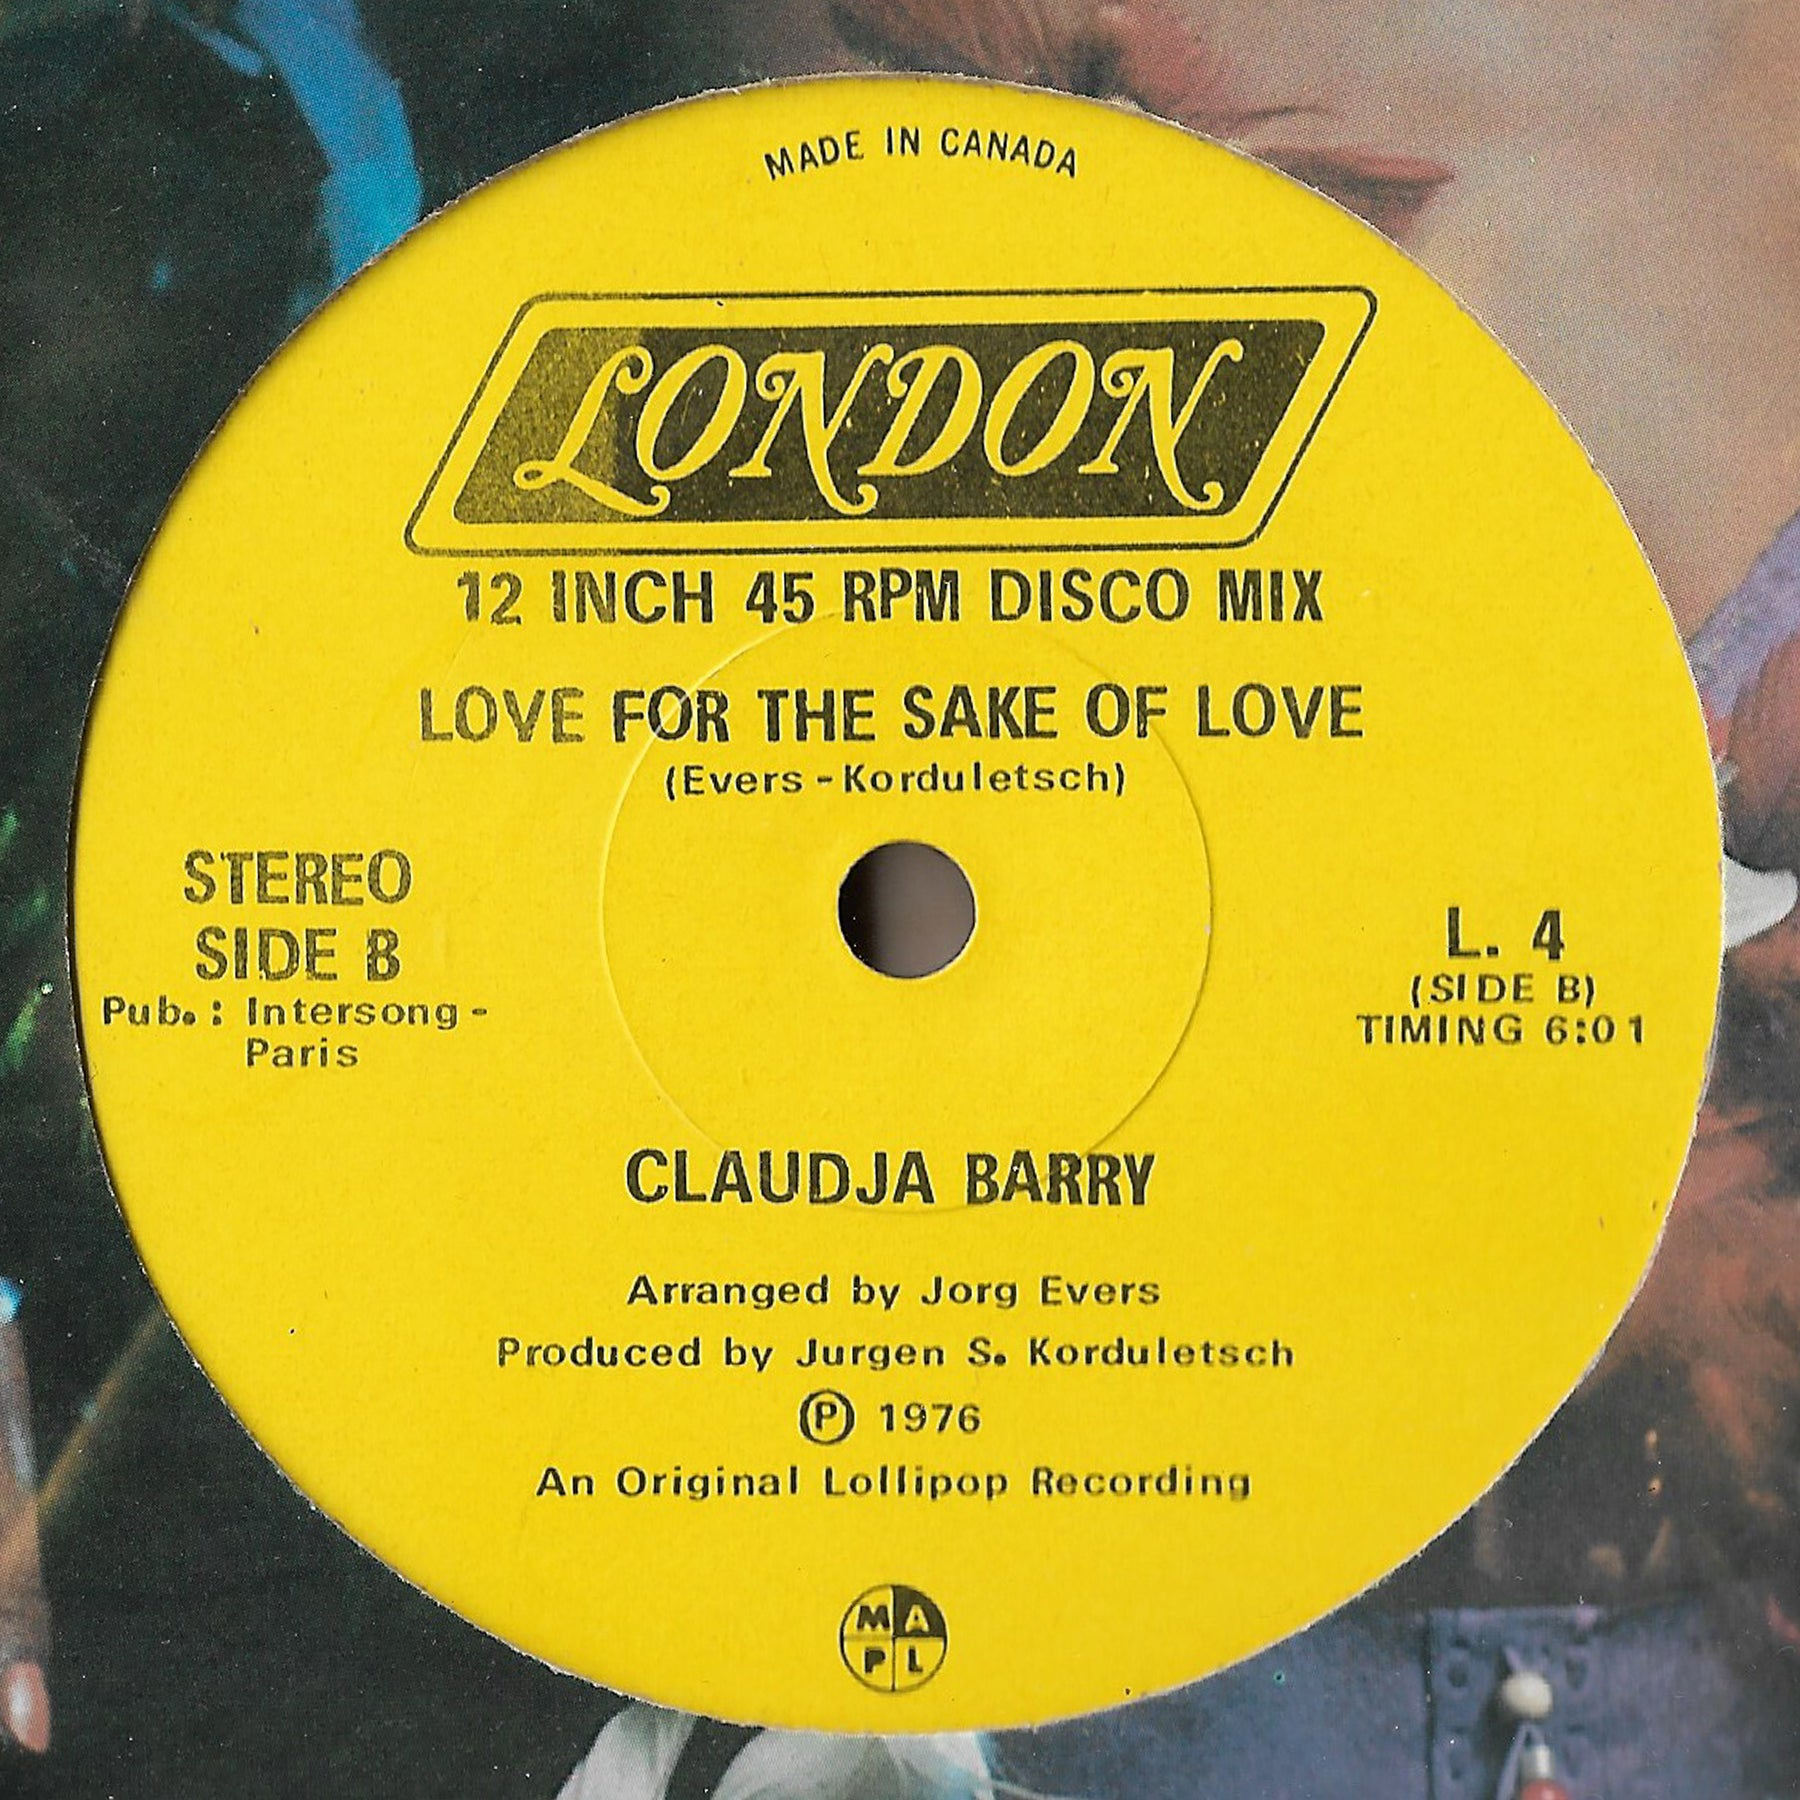 Claudja Barry - Sweet Dynamite / Love For The Sake Of Love